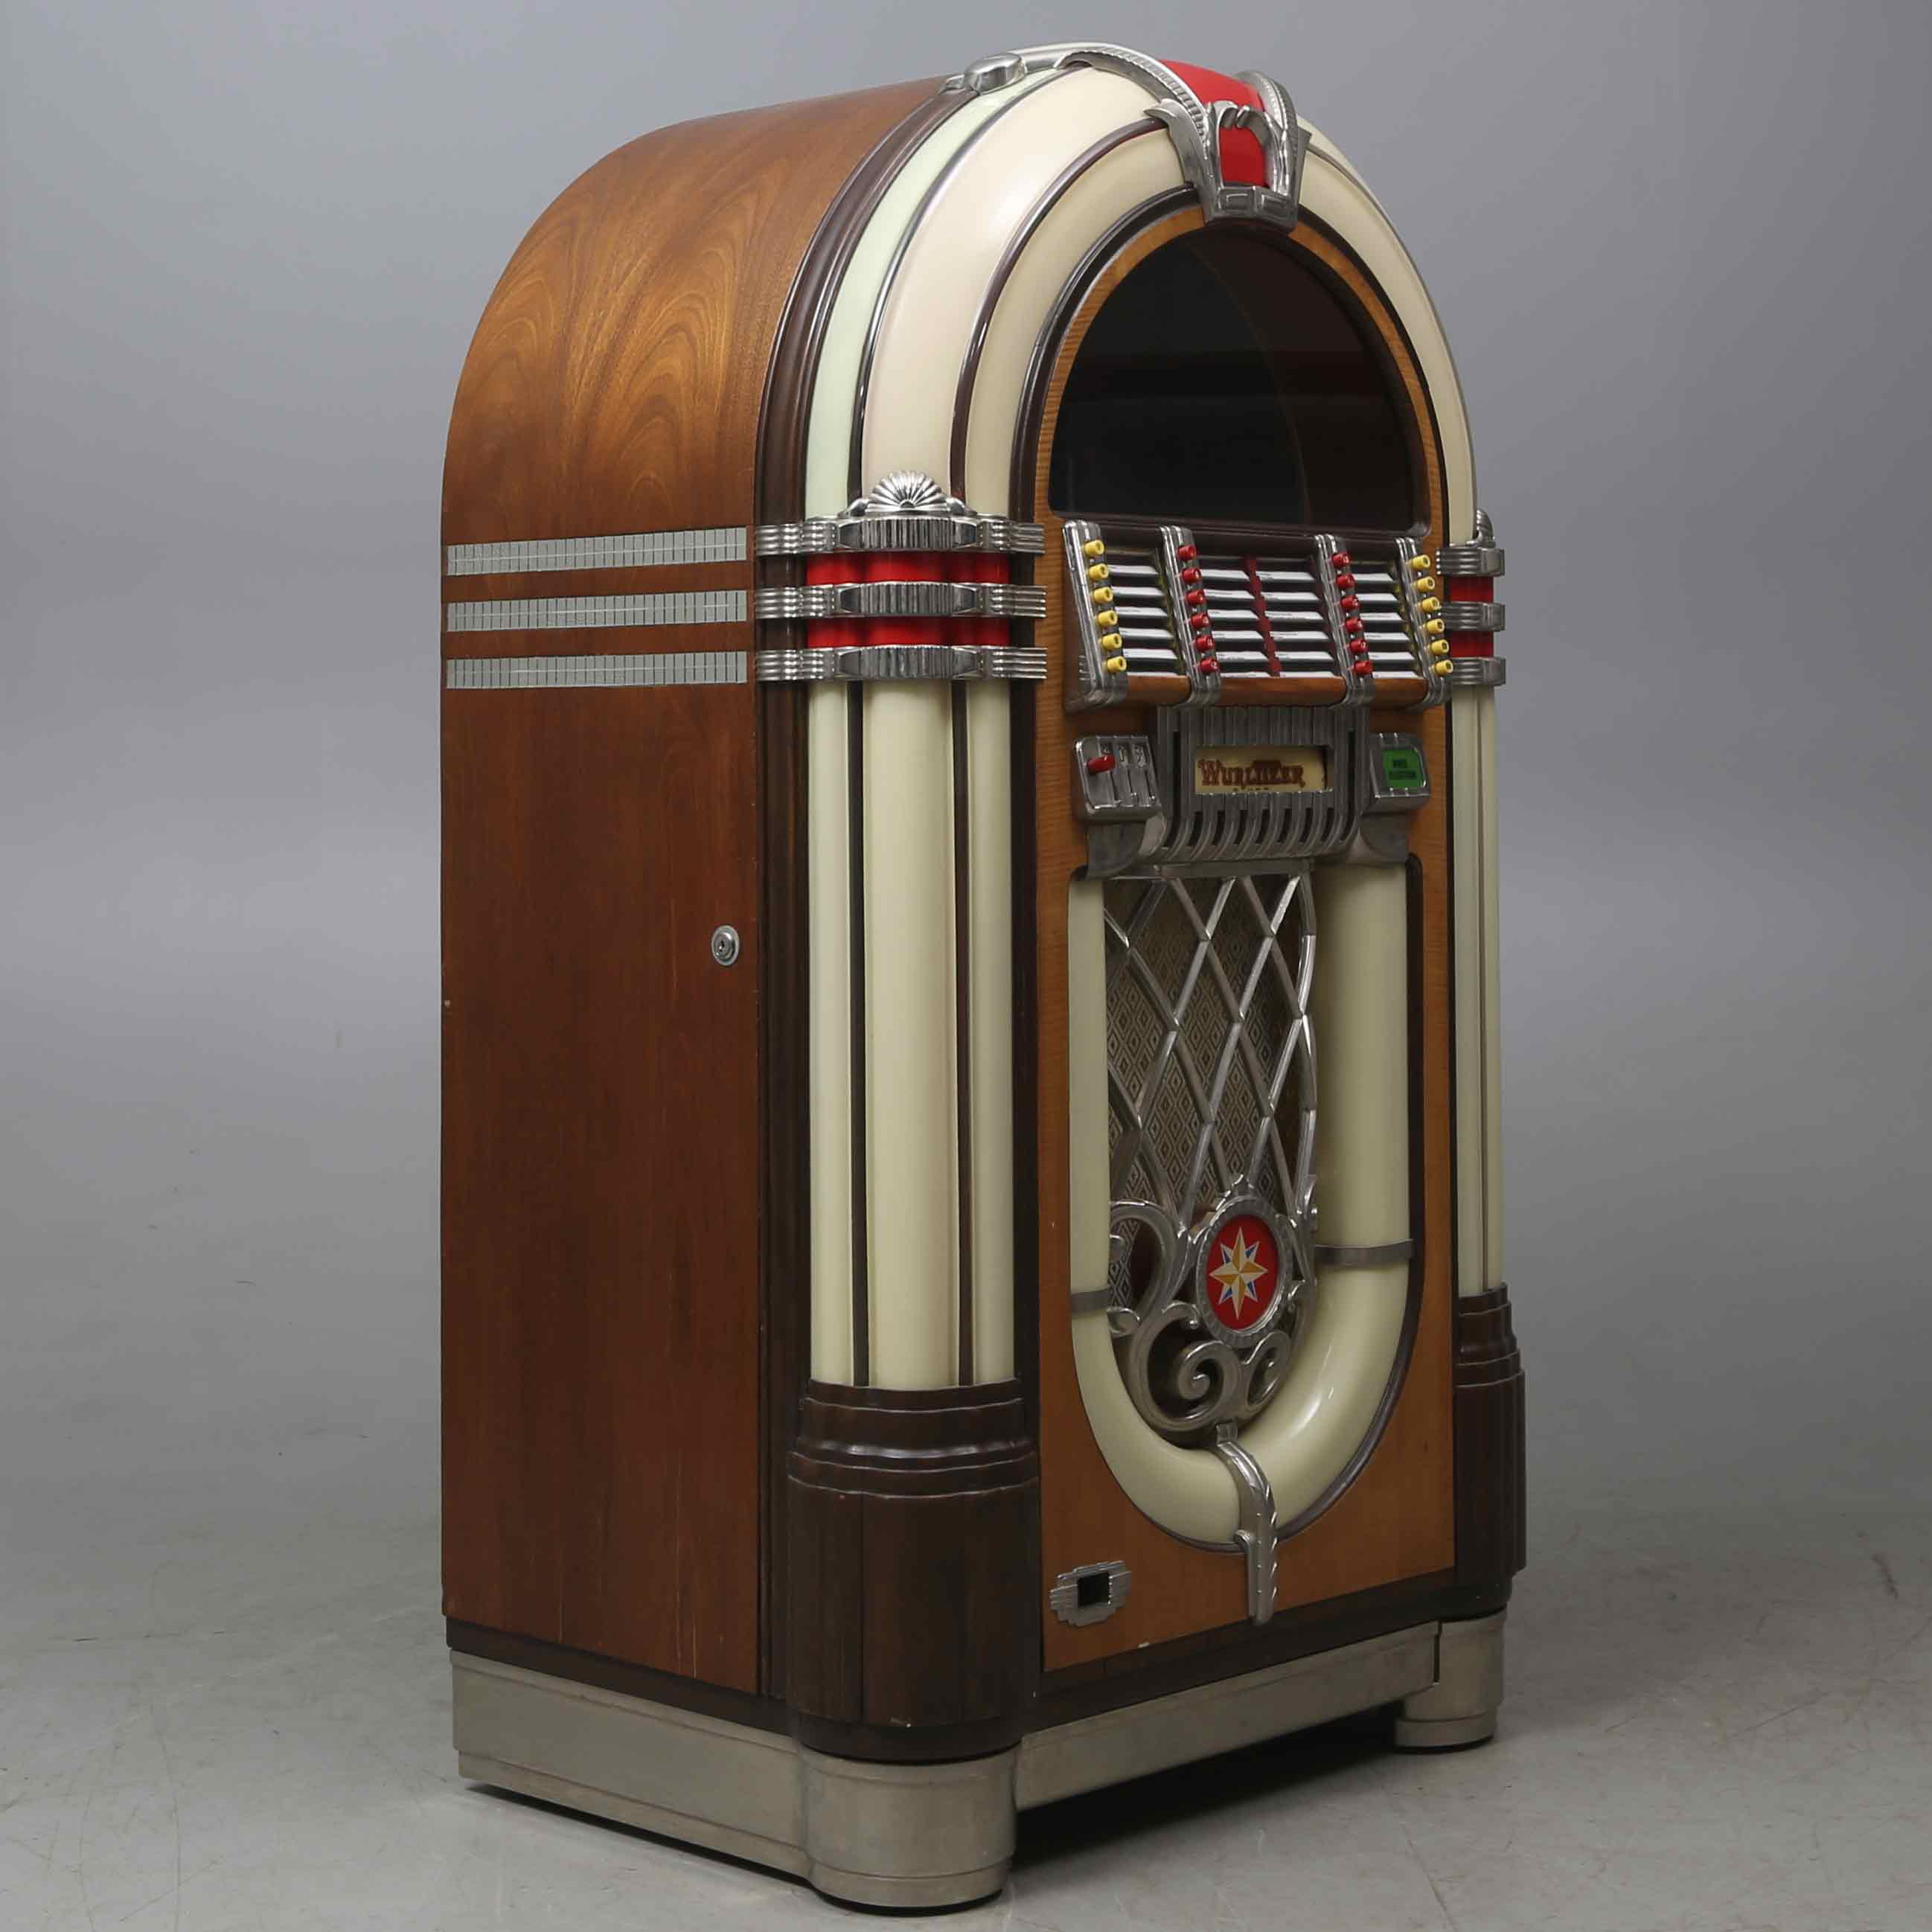 Jukeboxen